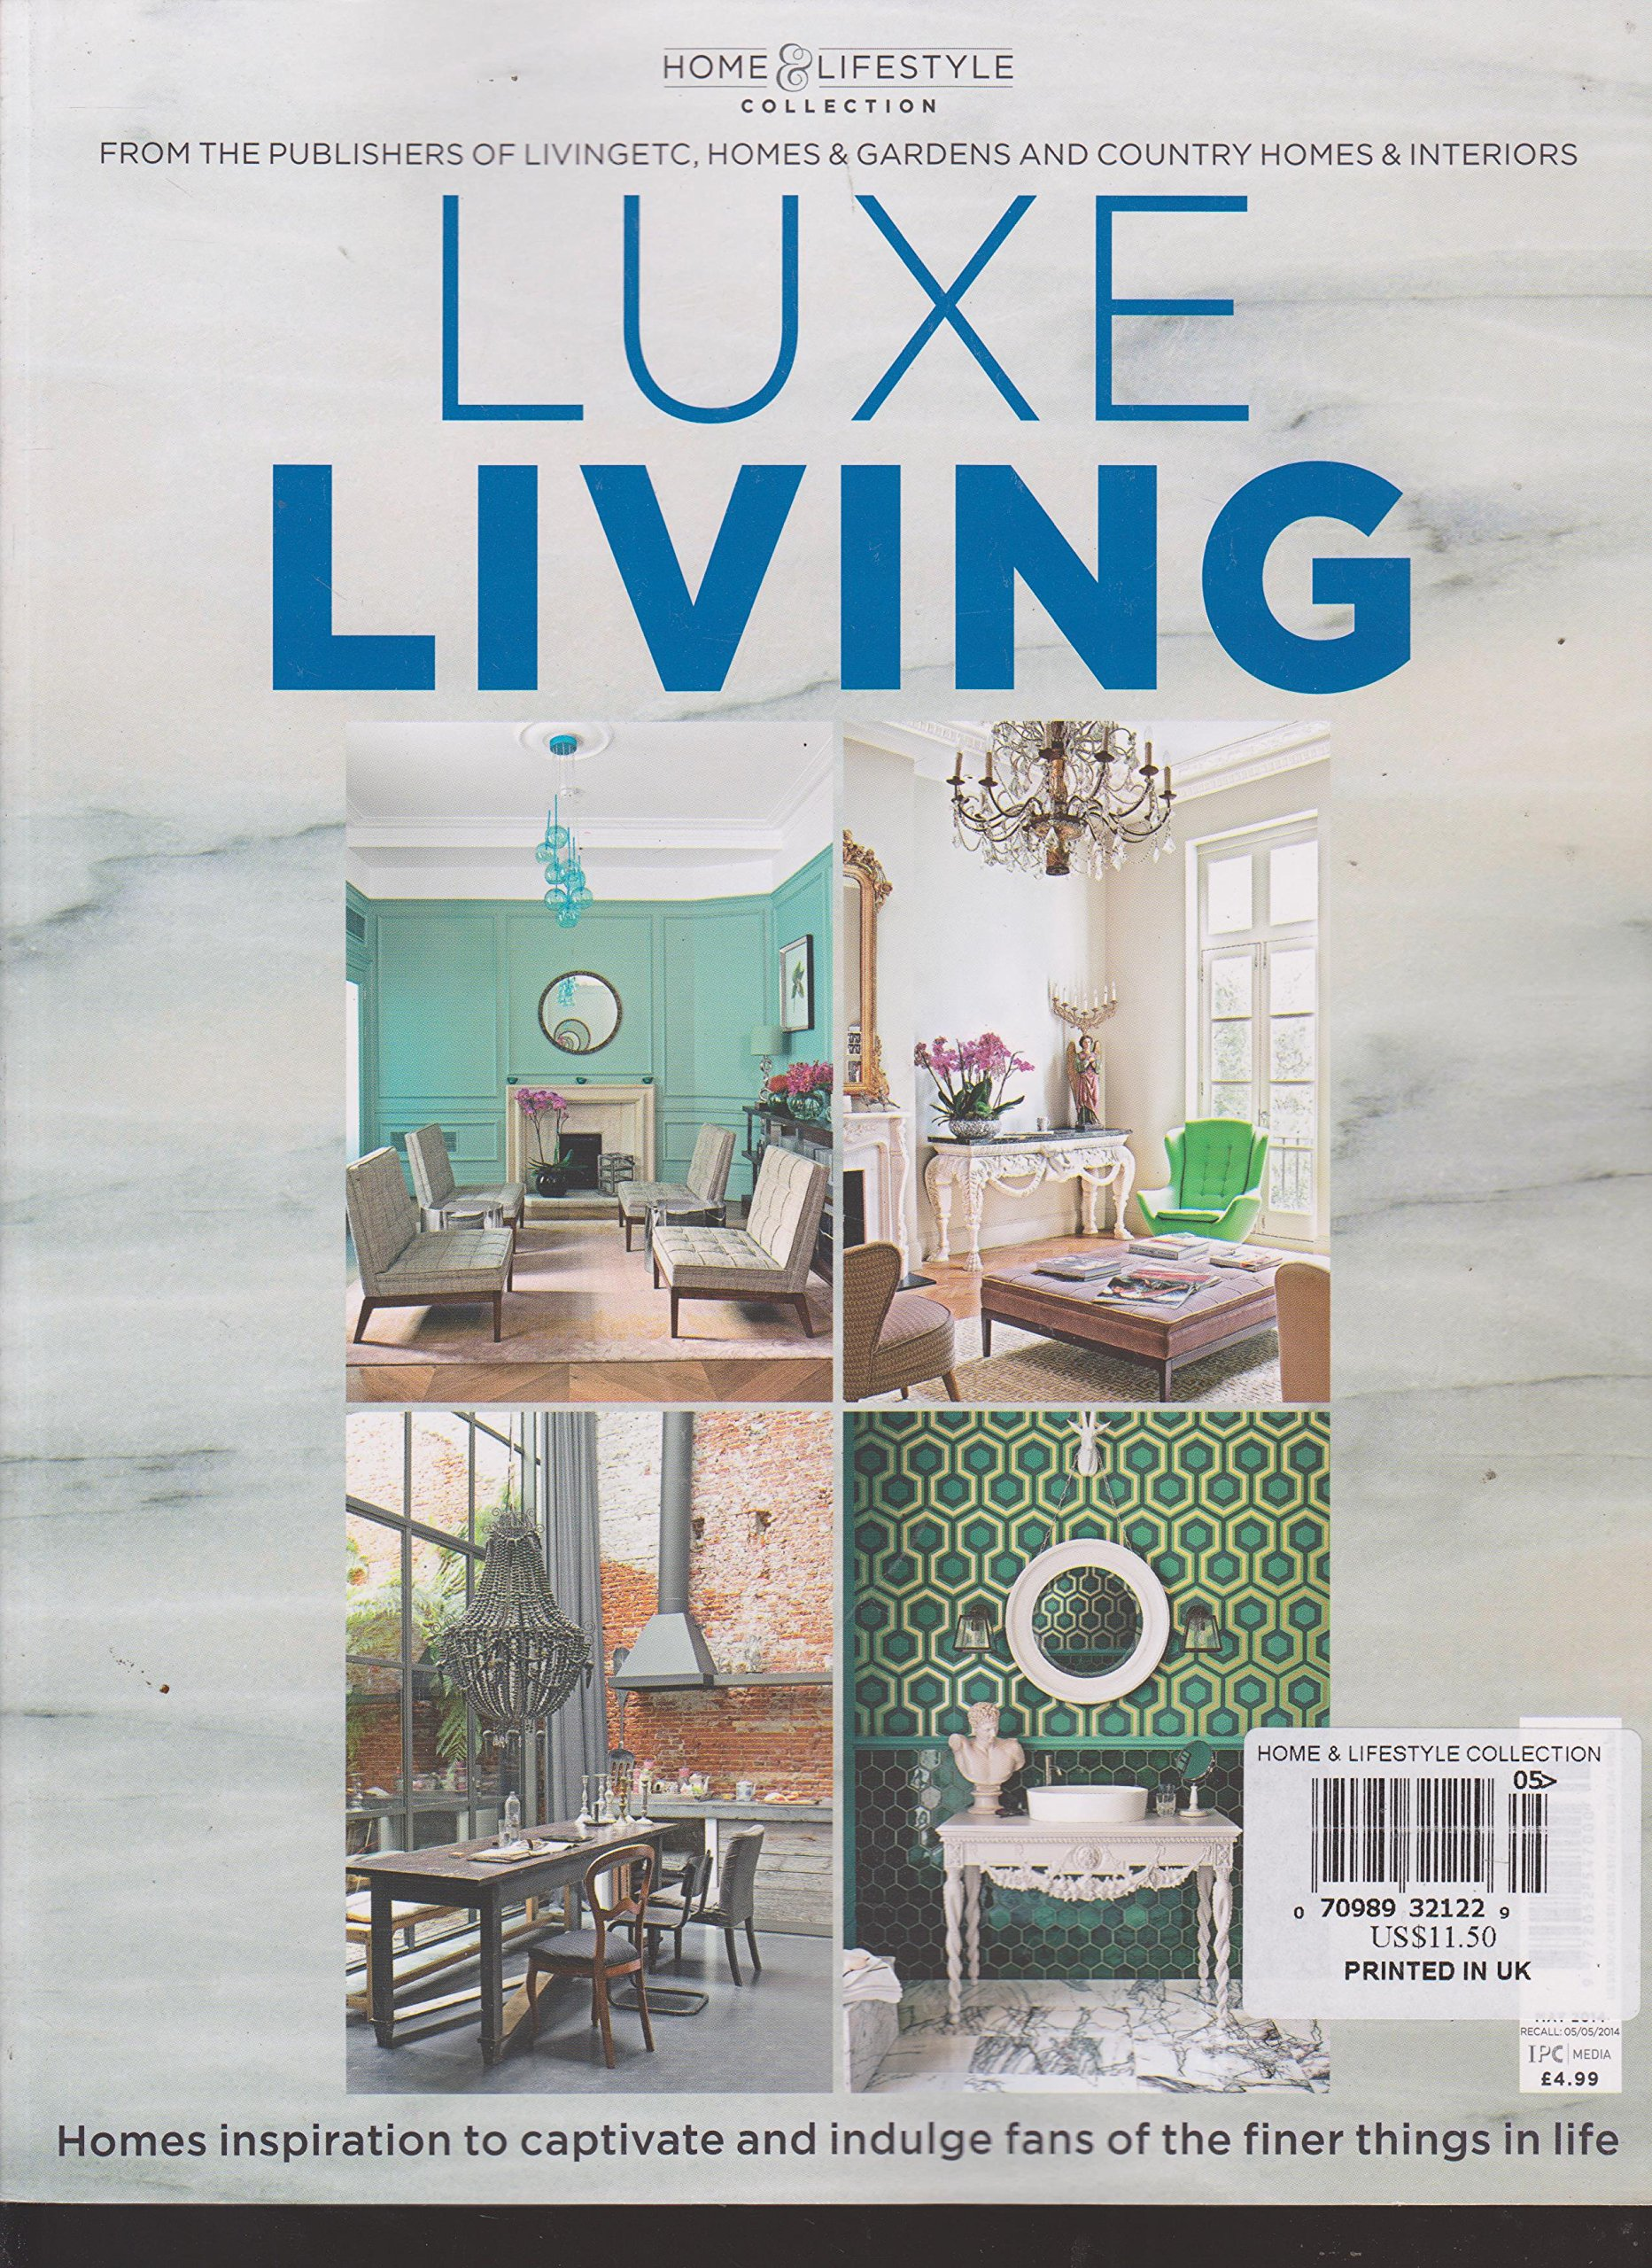 Home & Lifestyle Collection Luxe Living Magazine: